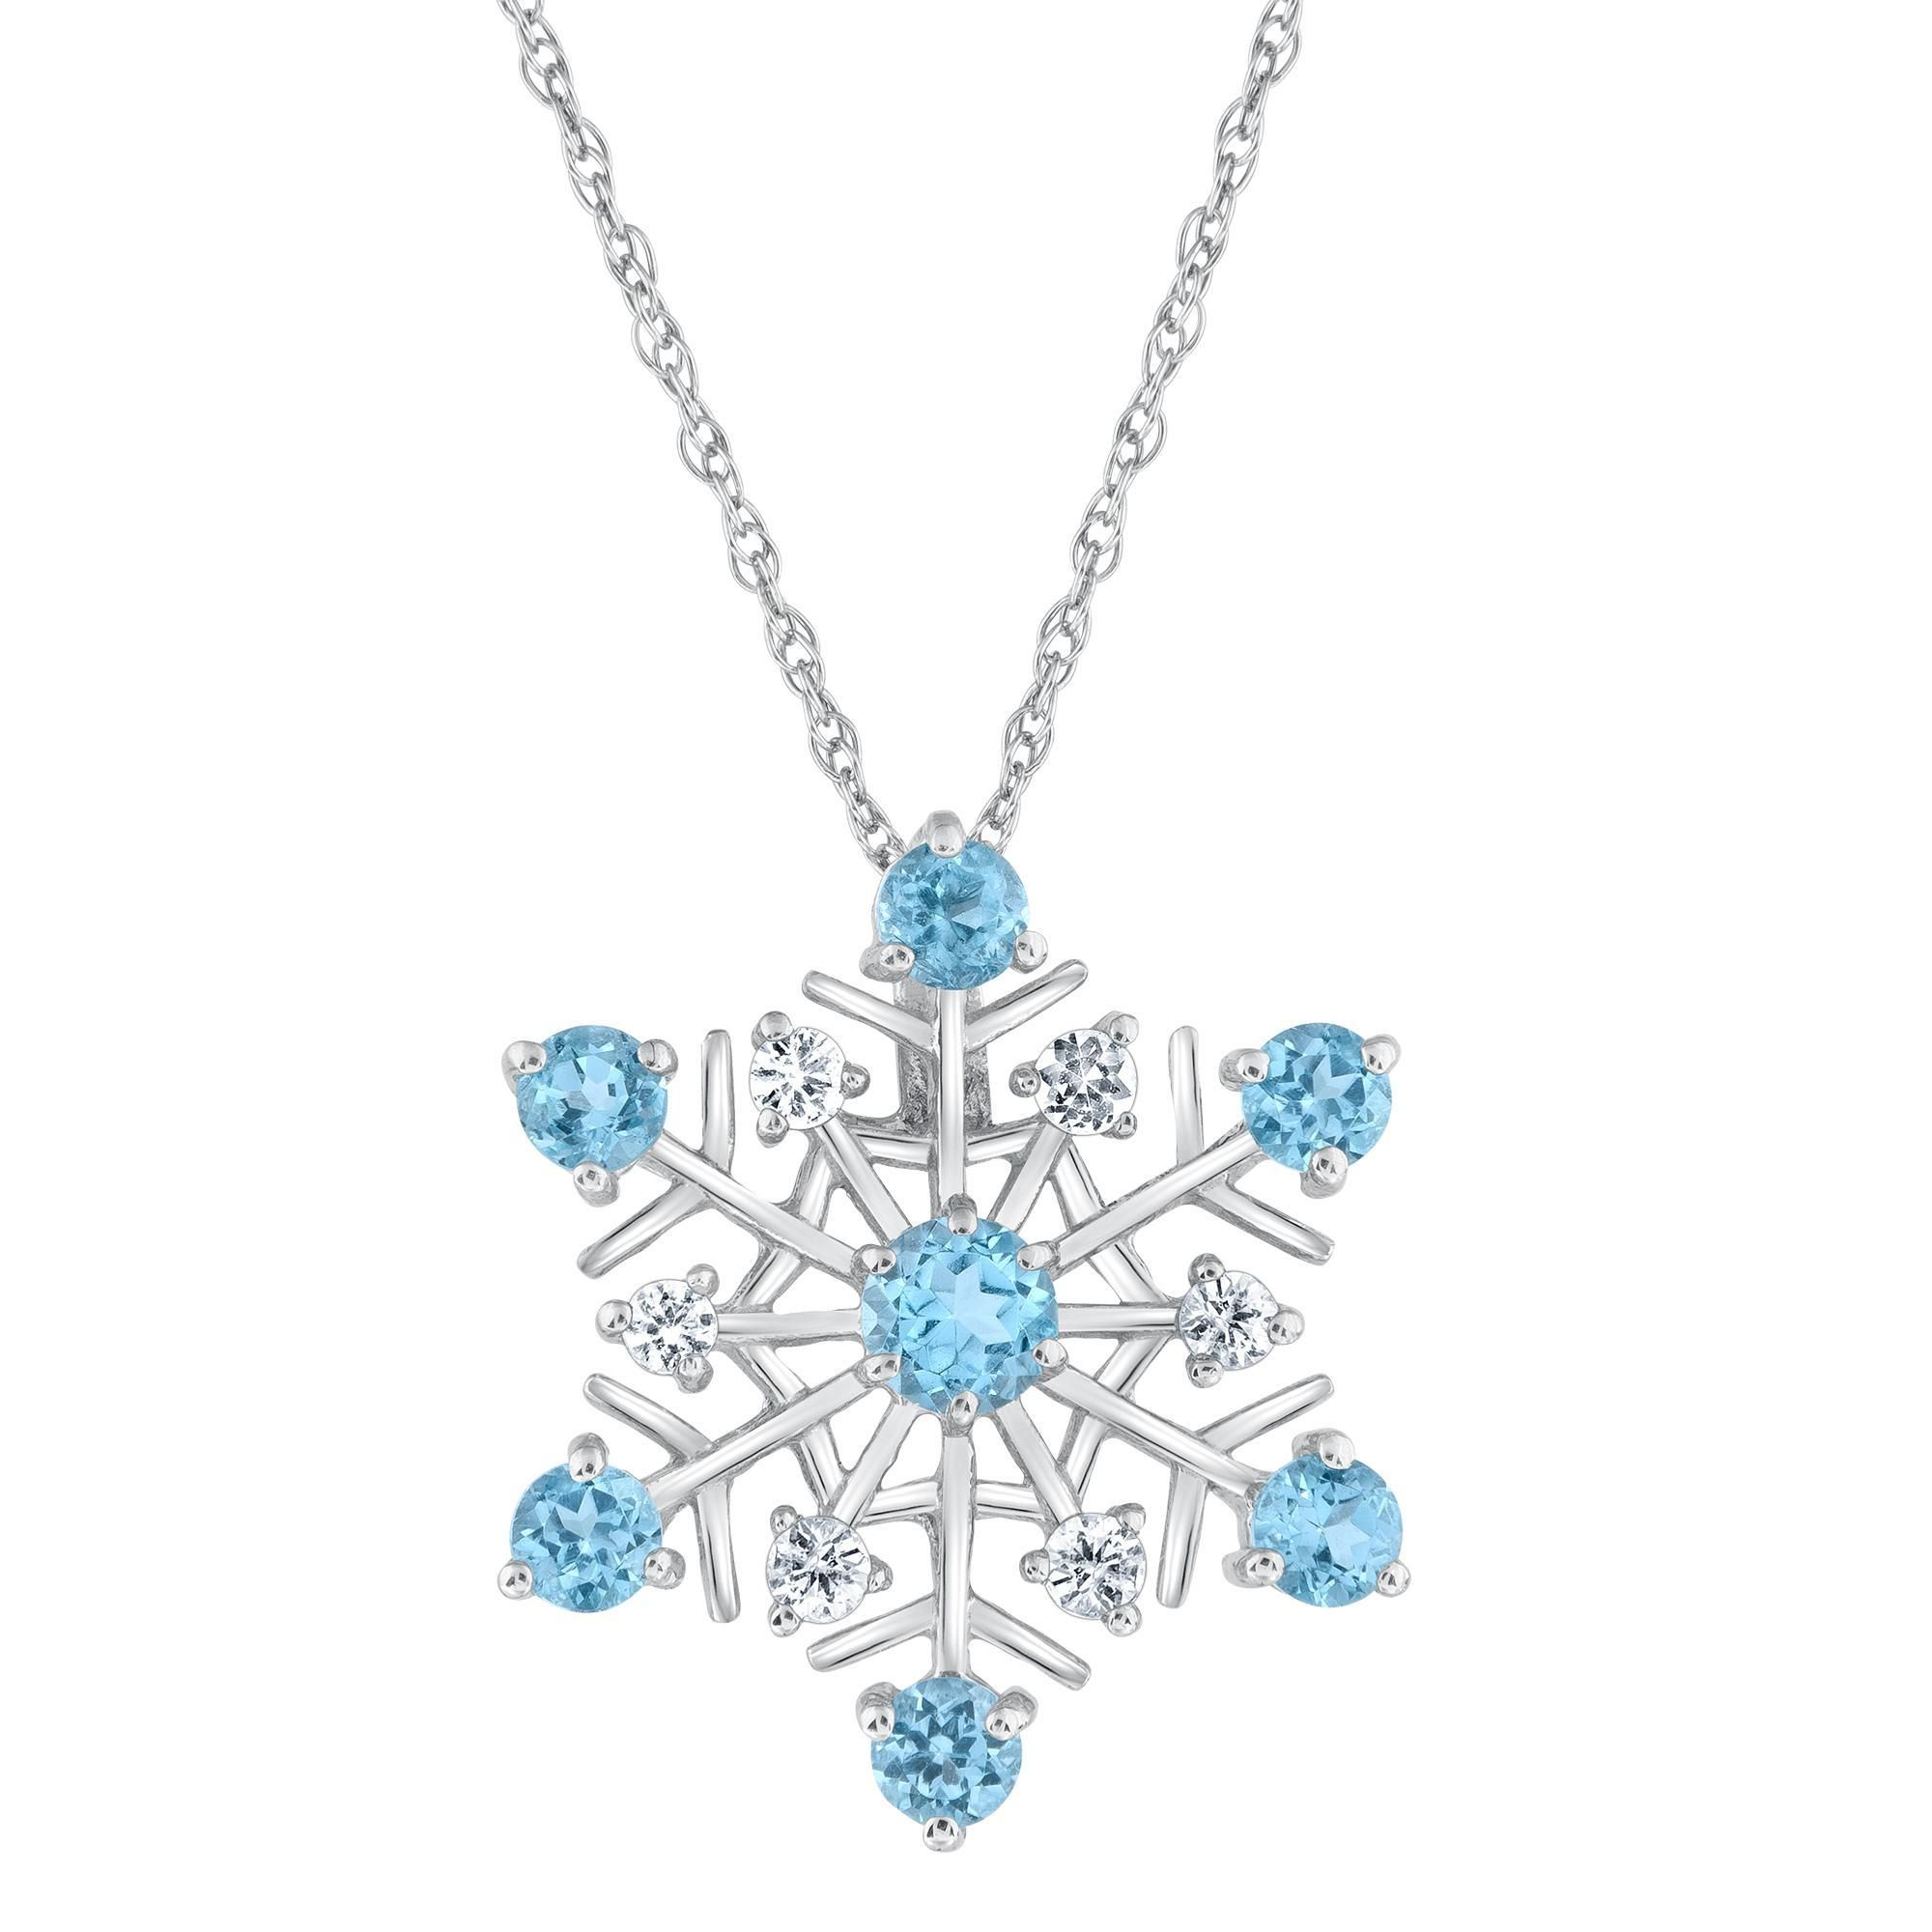 snowflake necklace pendant barzel product elements swarovski